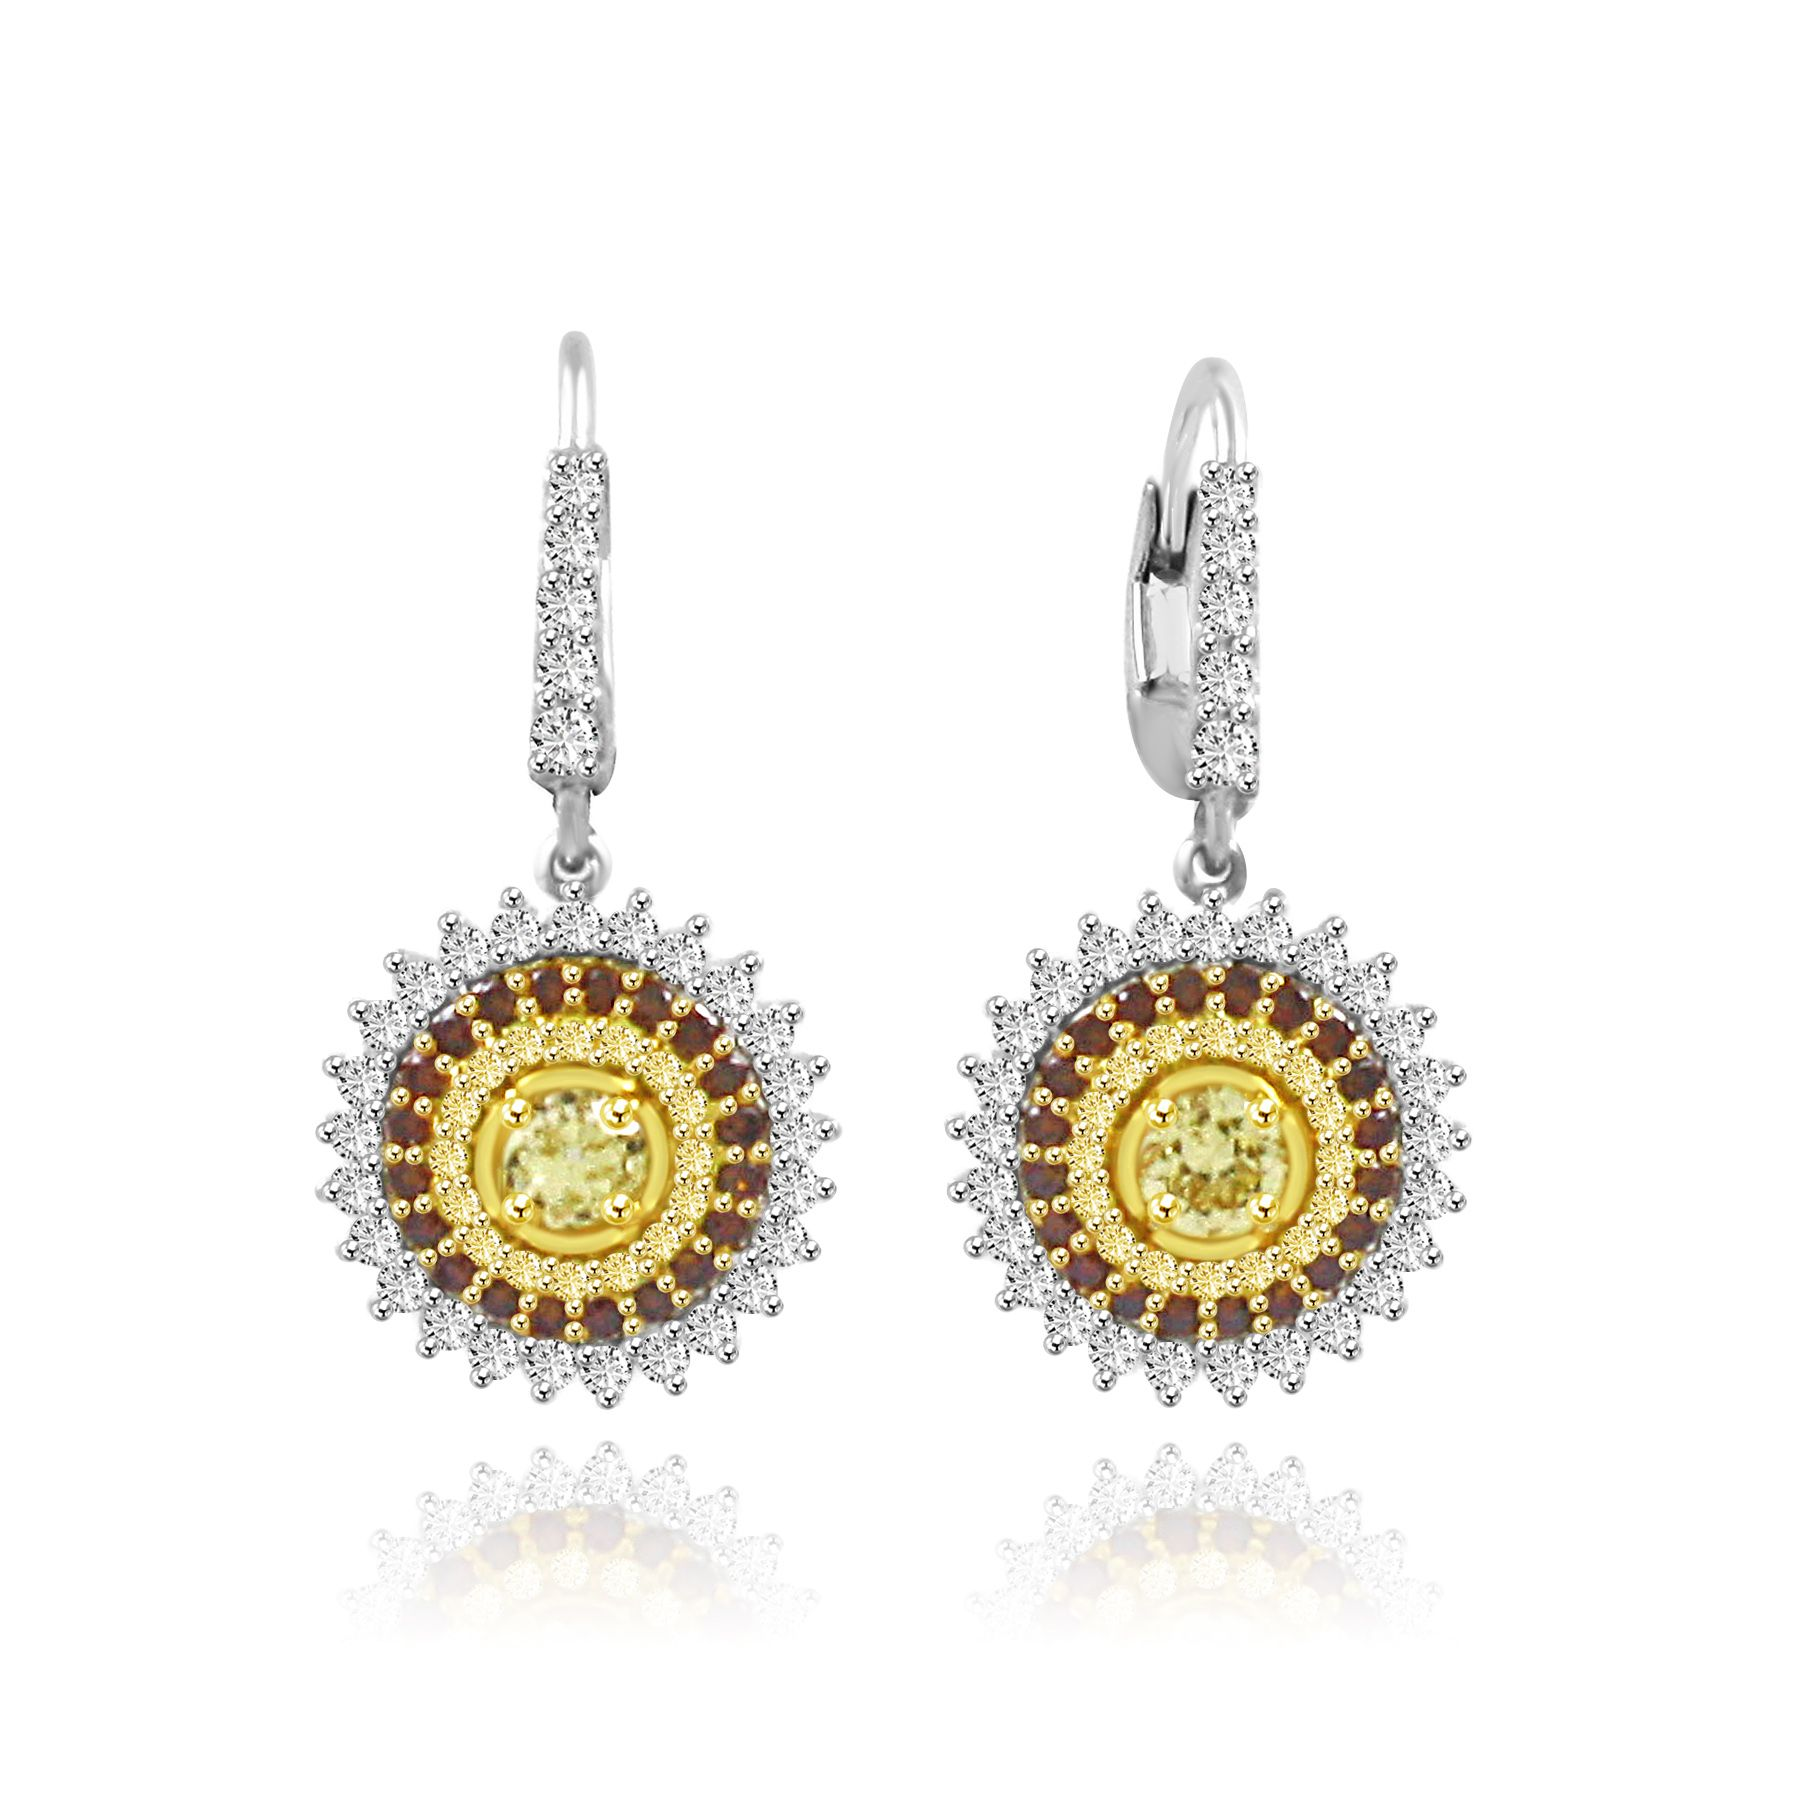 Colorstar Fancy color Diamond Earrings Image